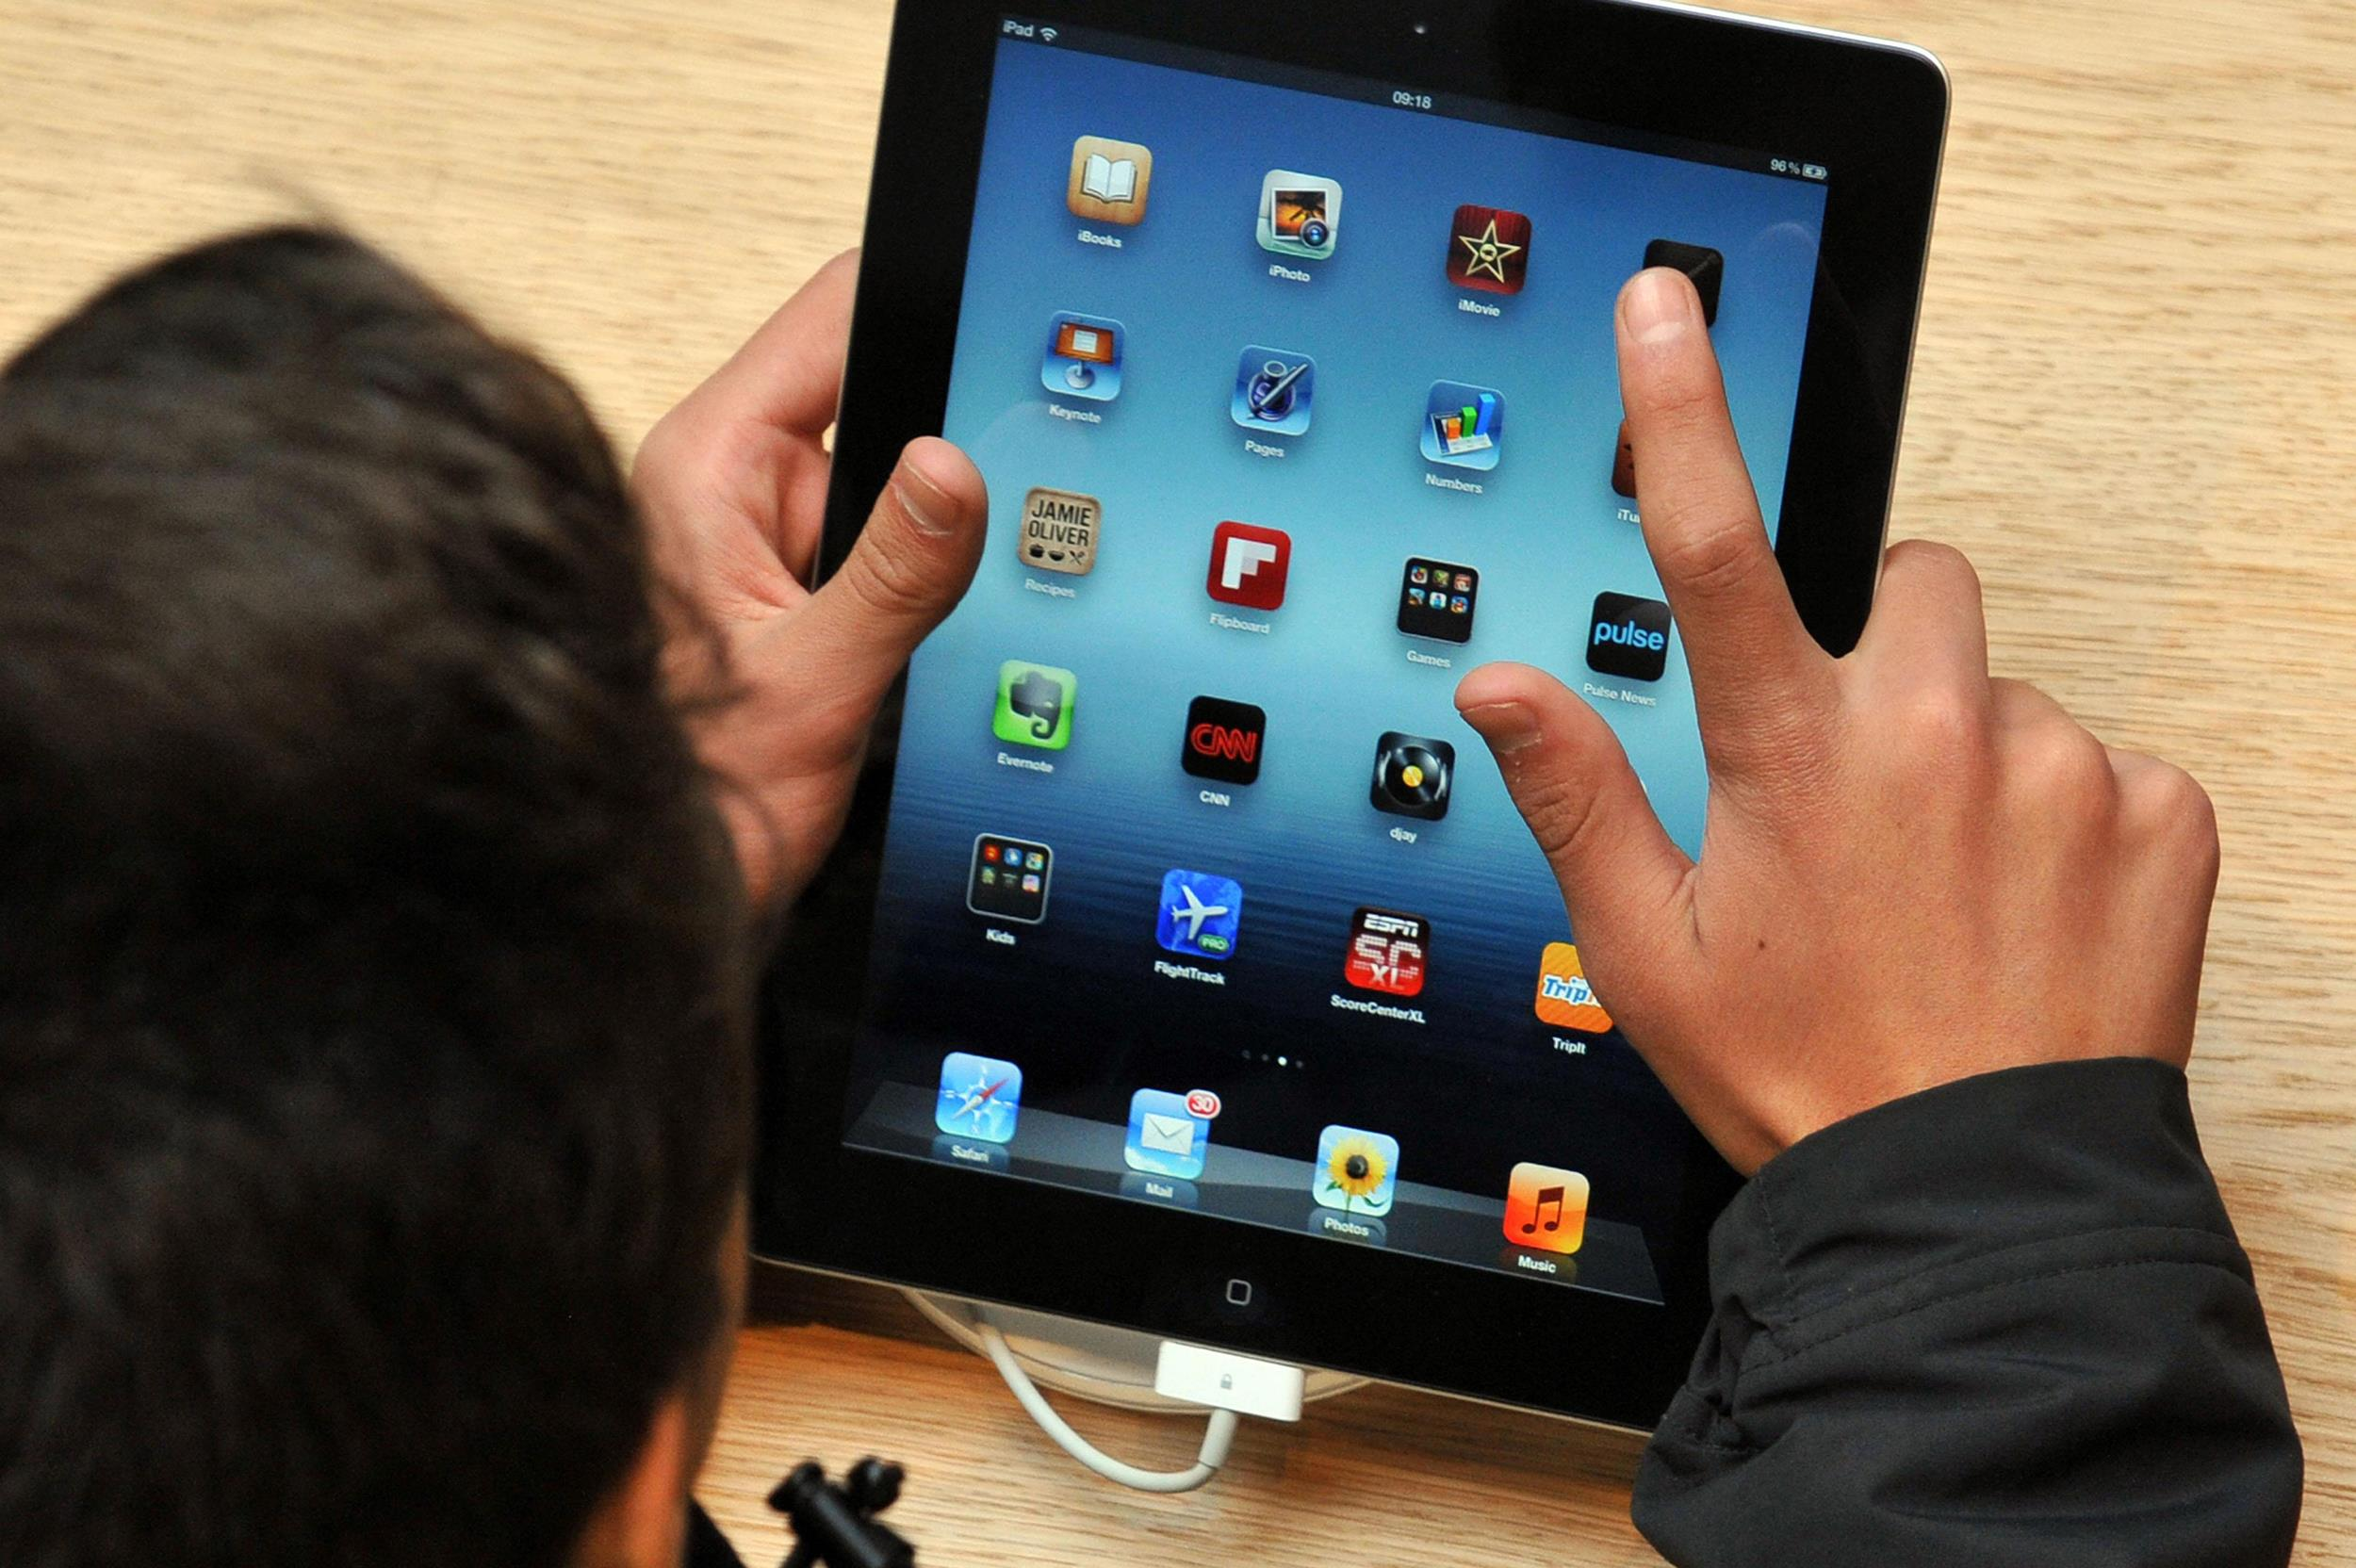 Image: A child n using an iPad